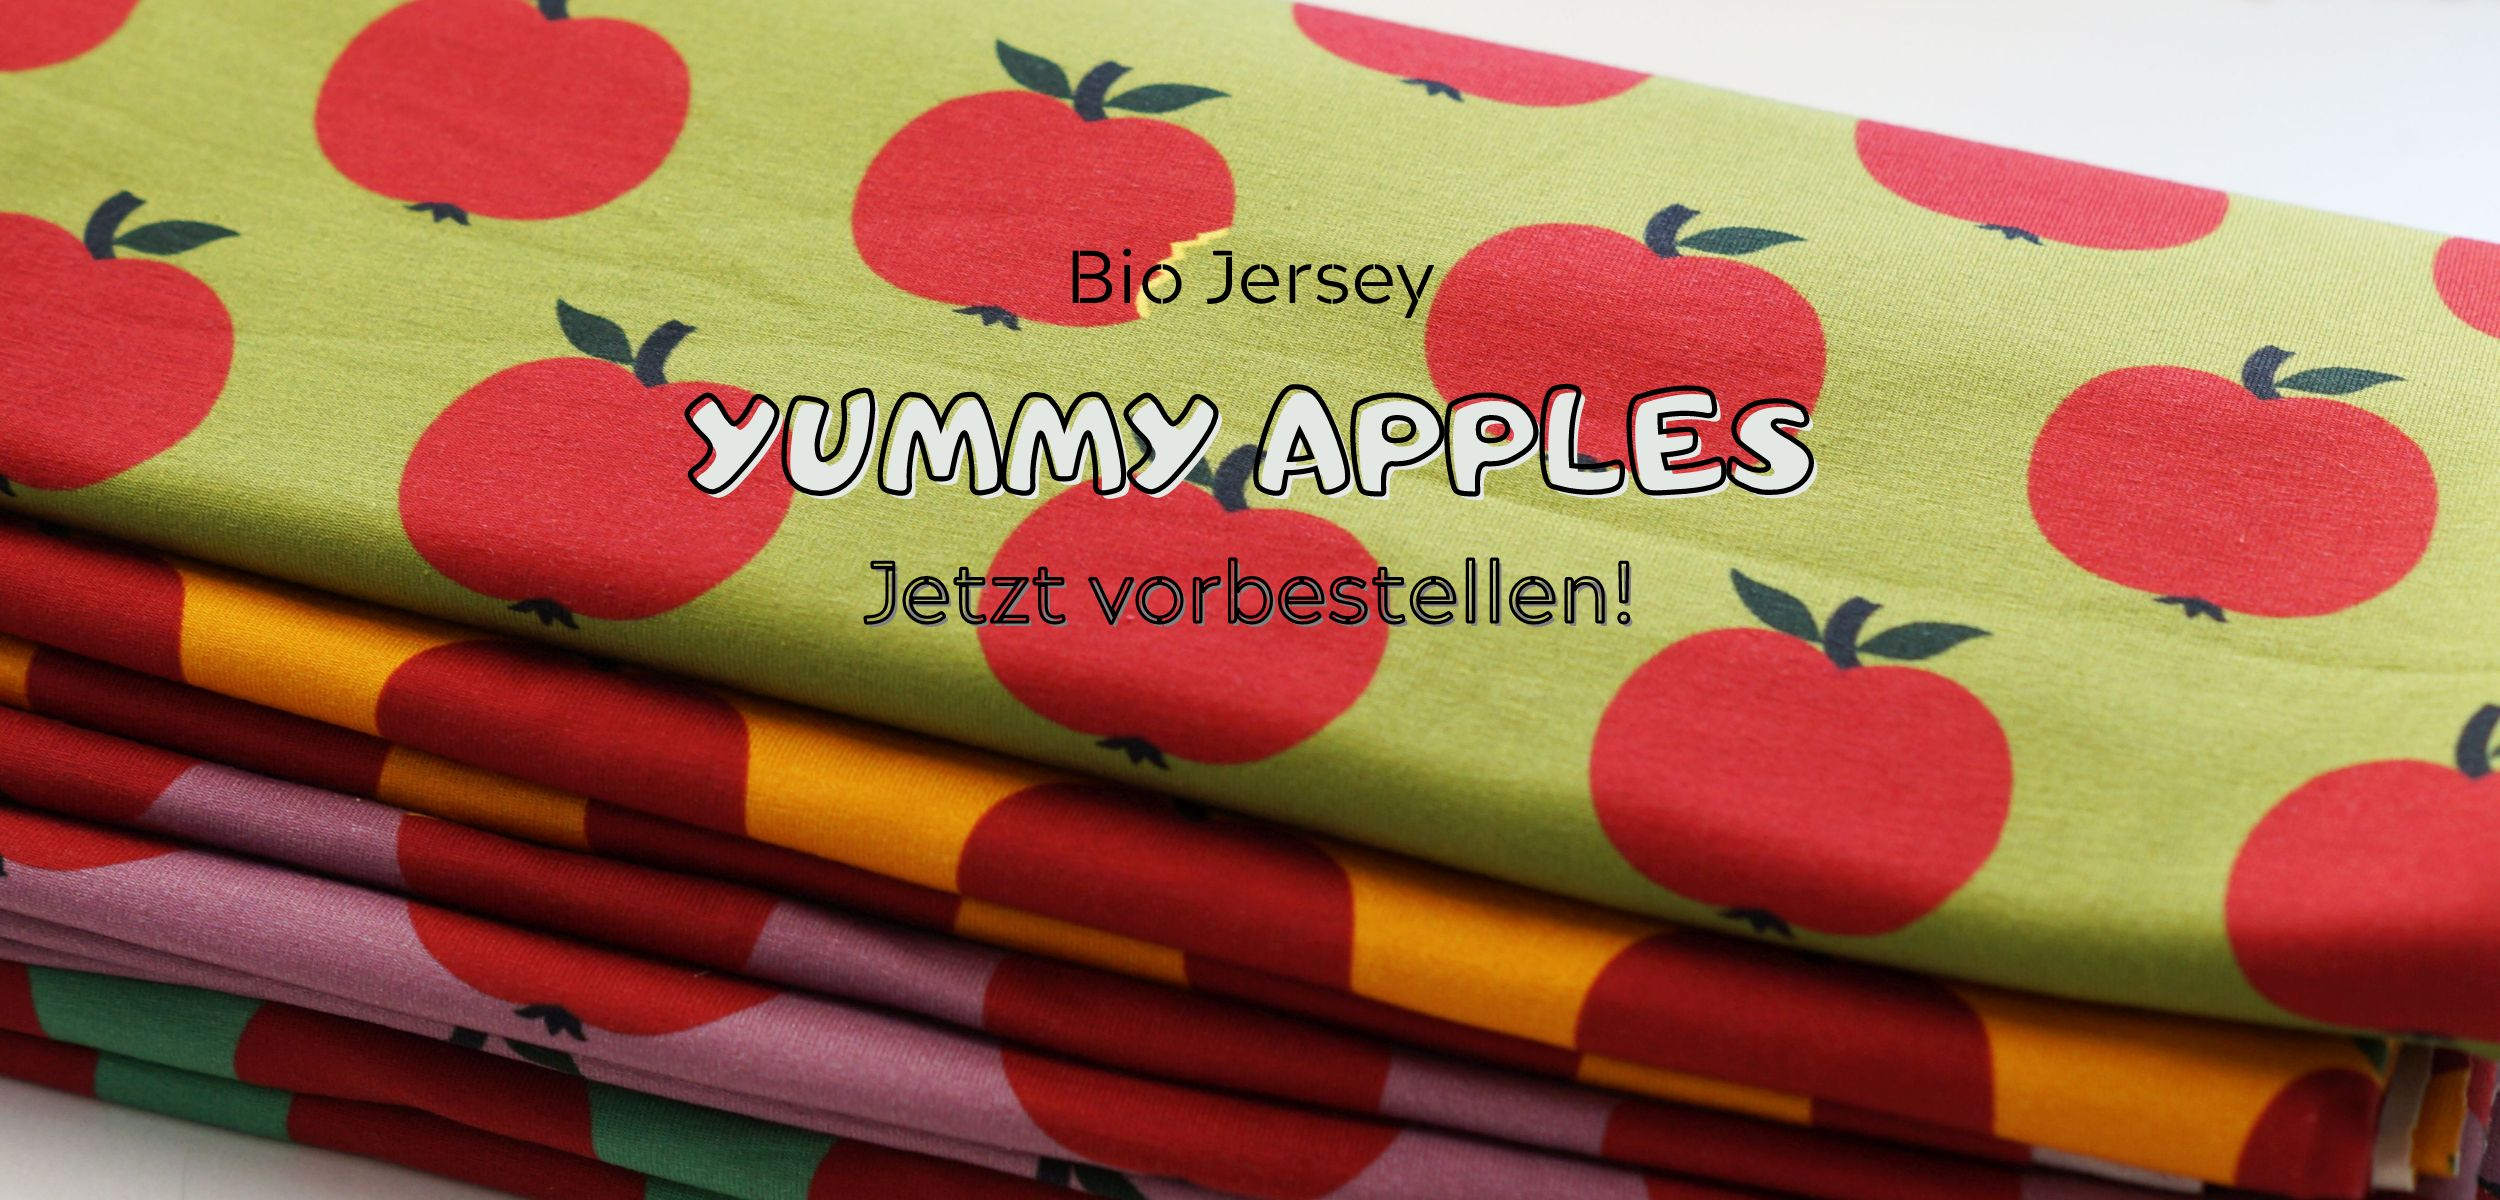 Shopbanner Yummy apples